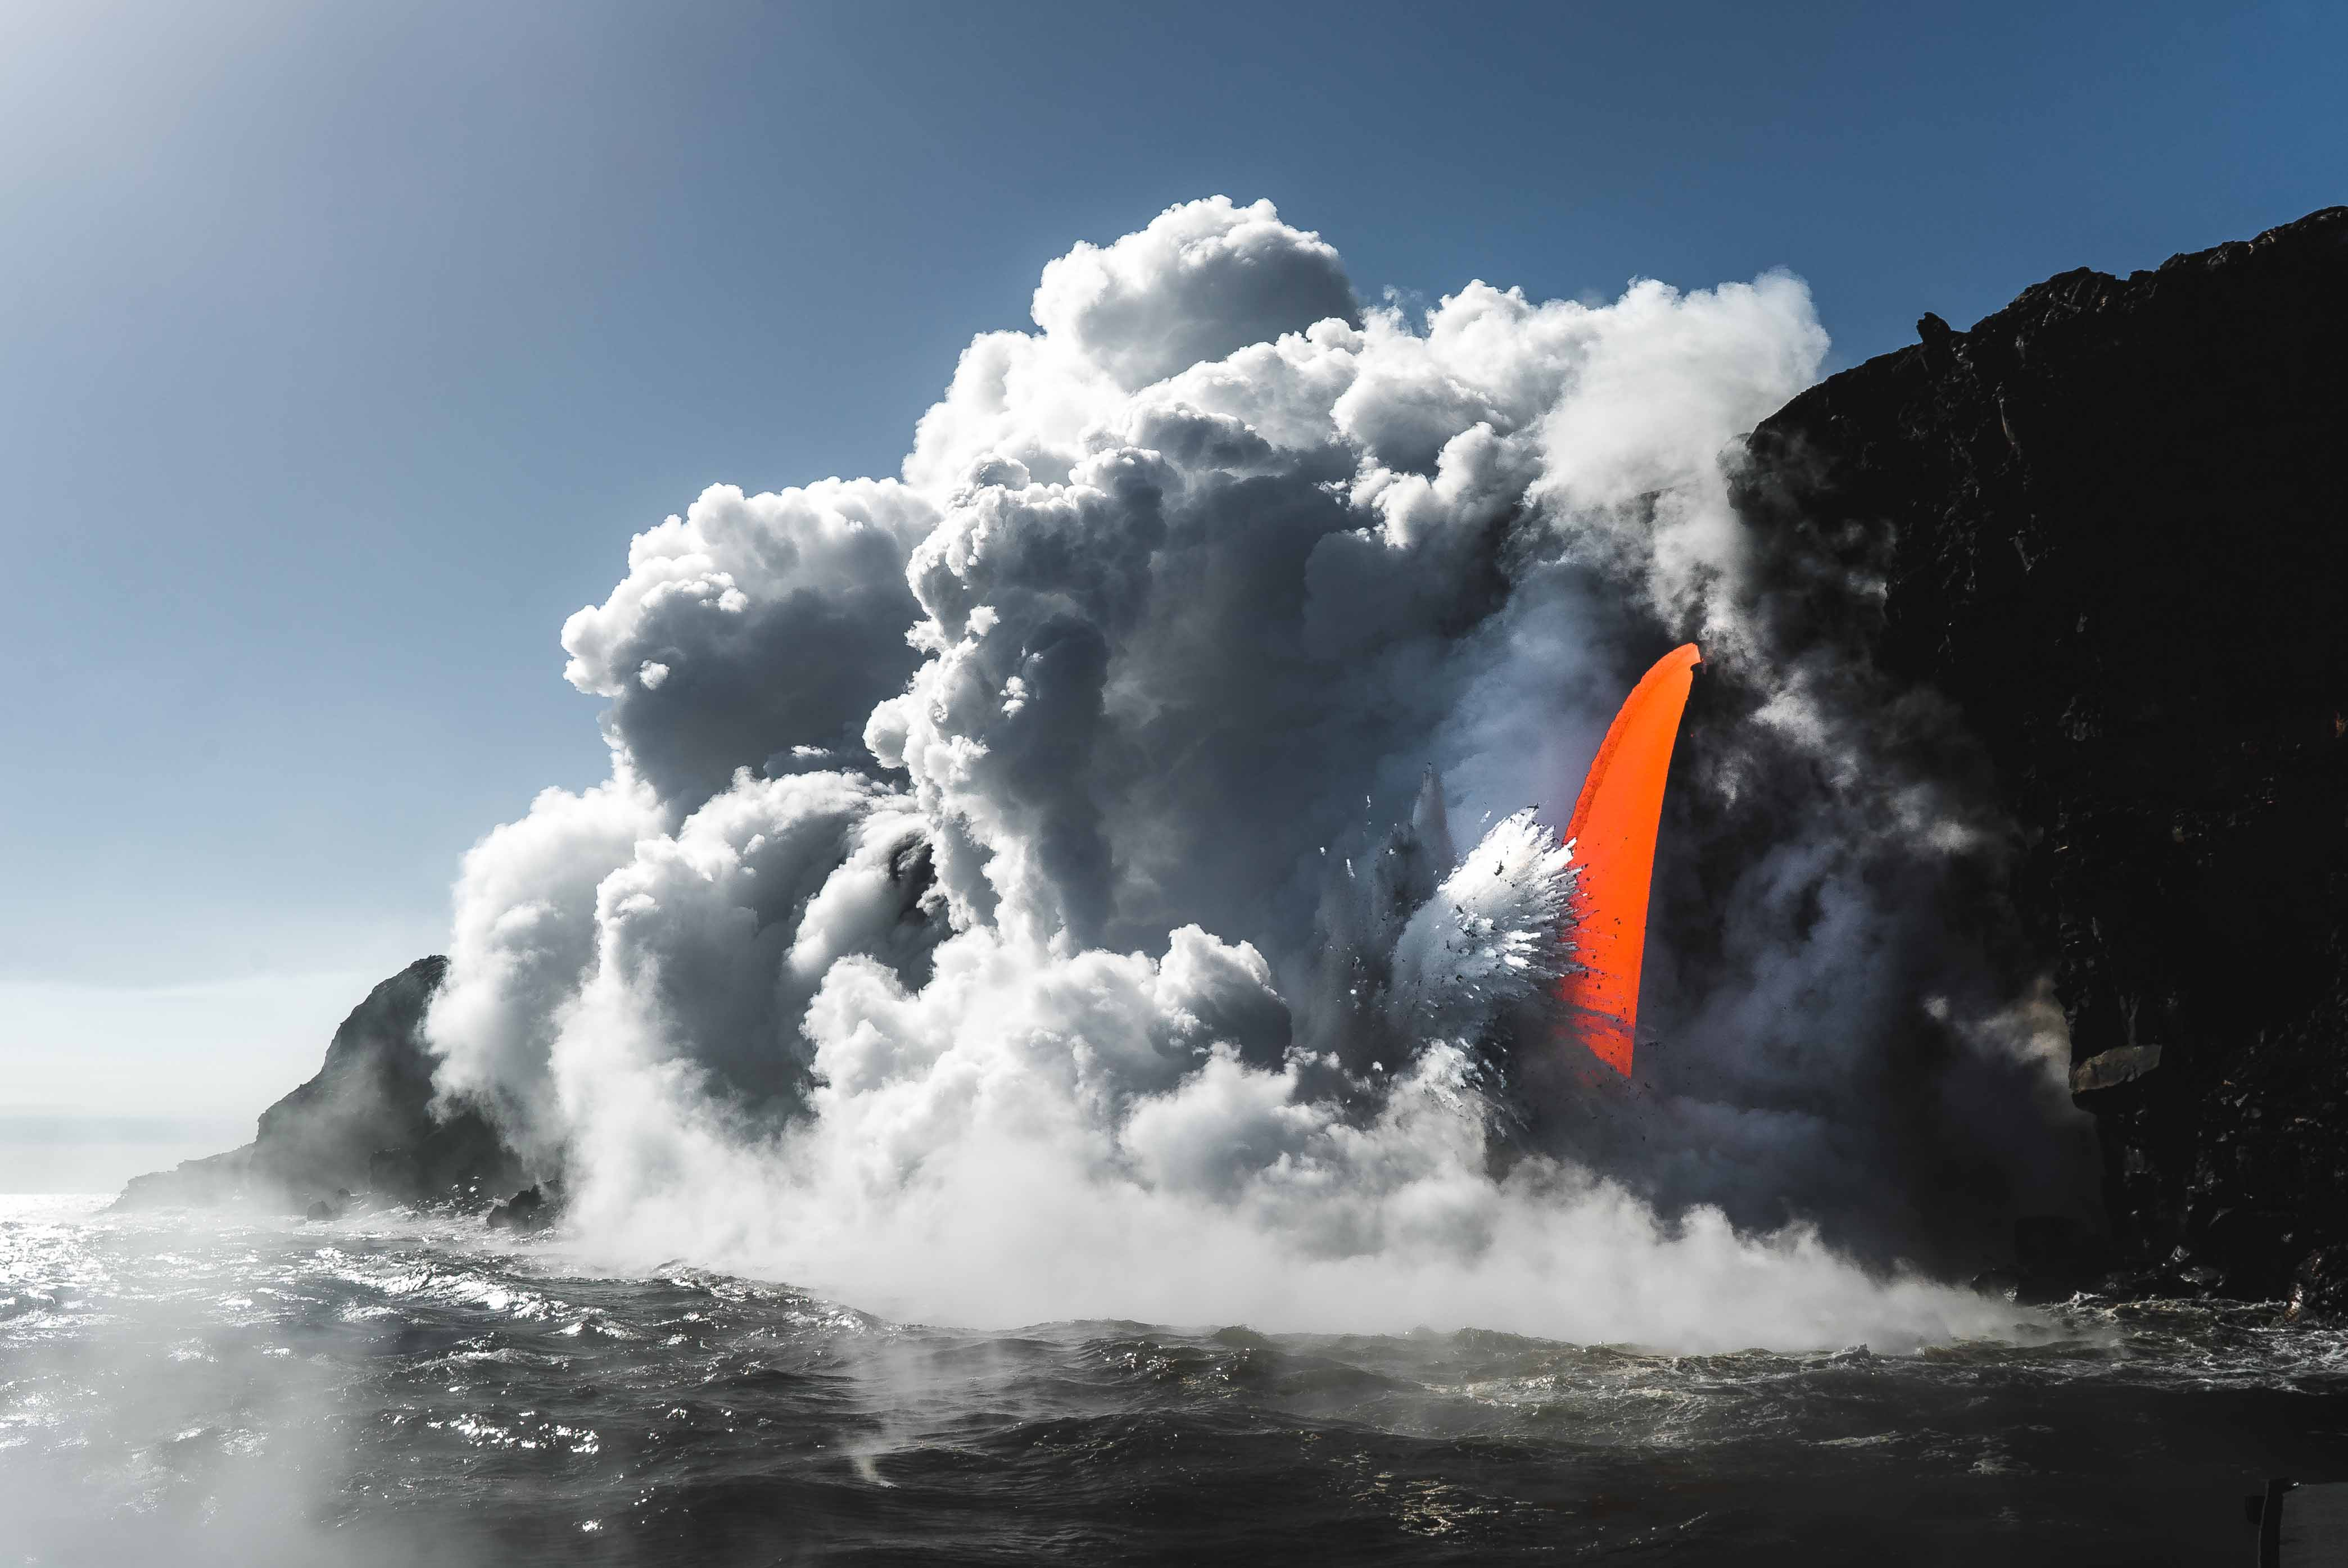 Photography of a lava spout (fire-hose) at Hawaii Volcanoes National Park